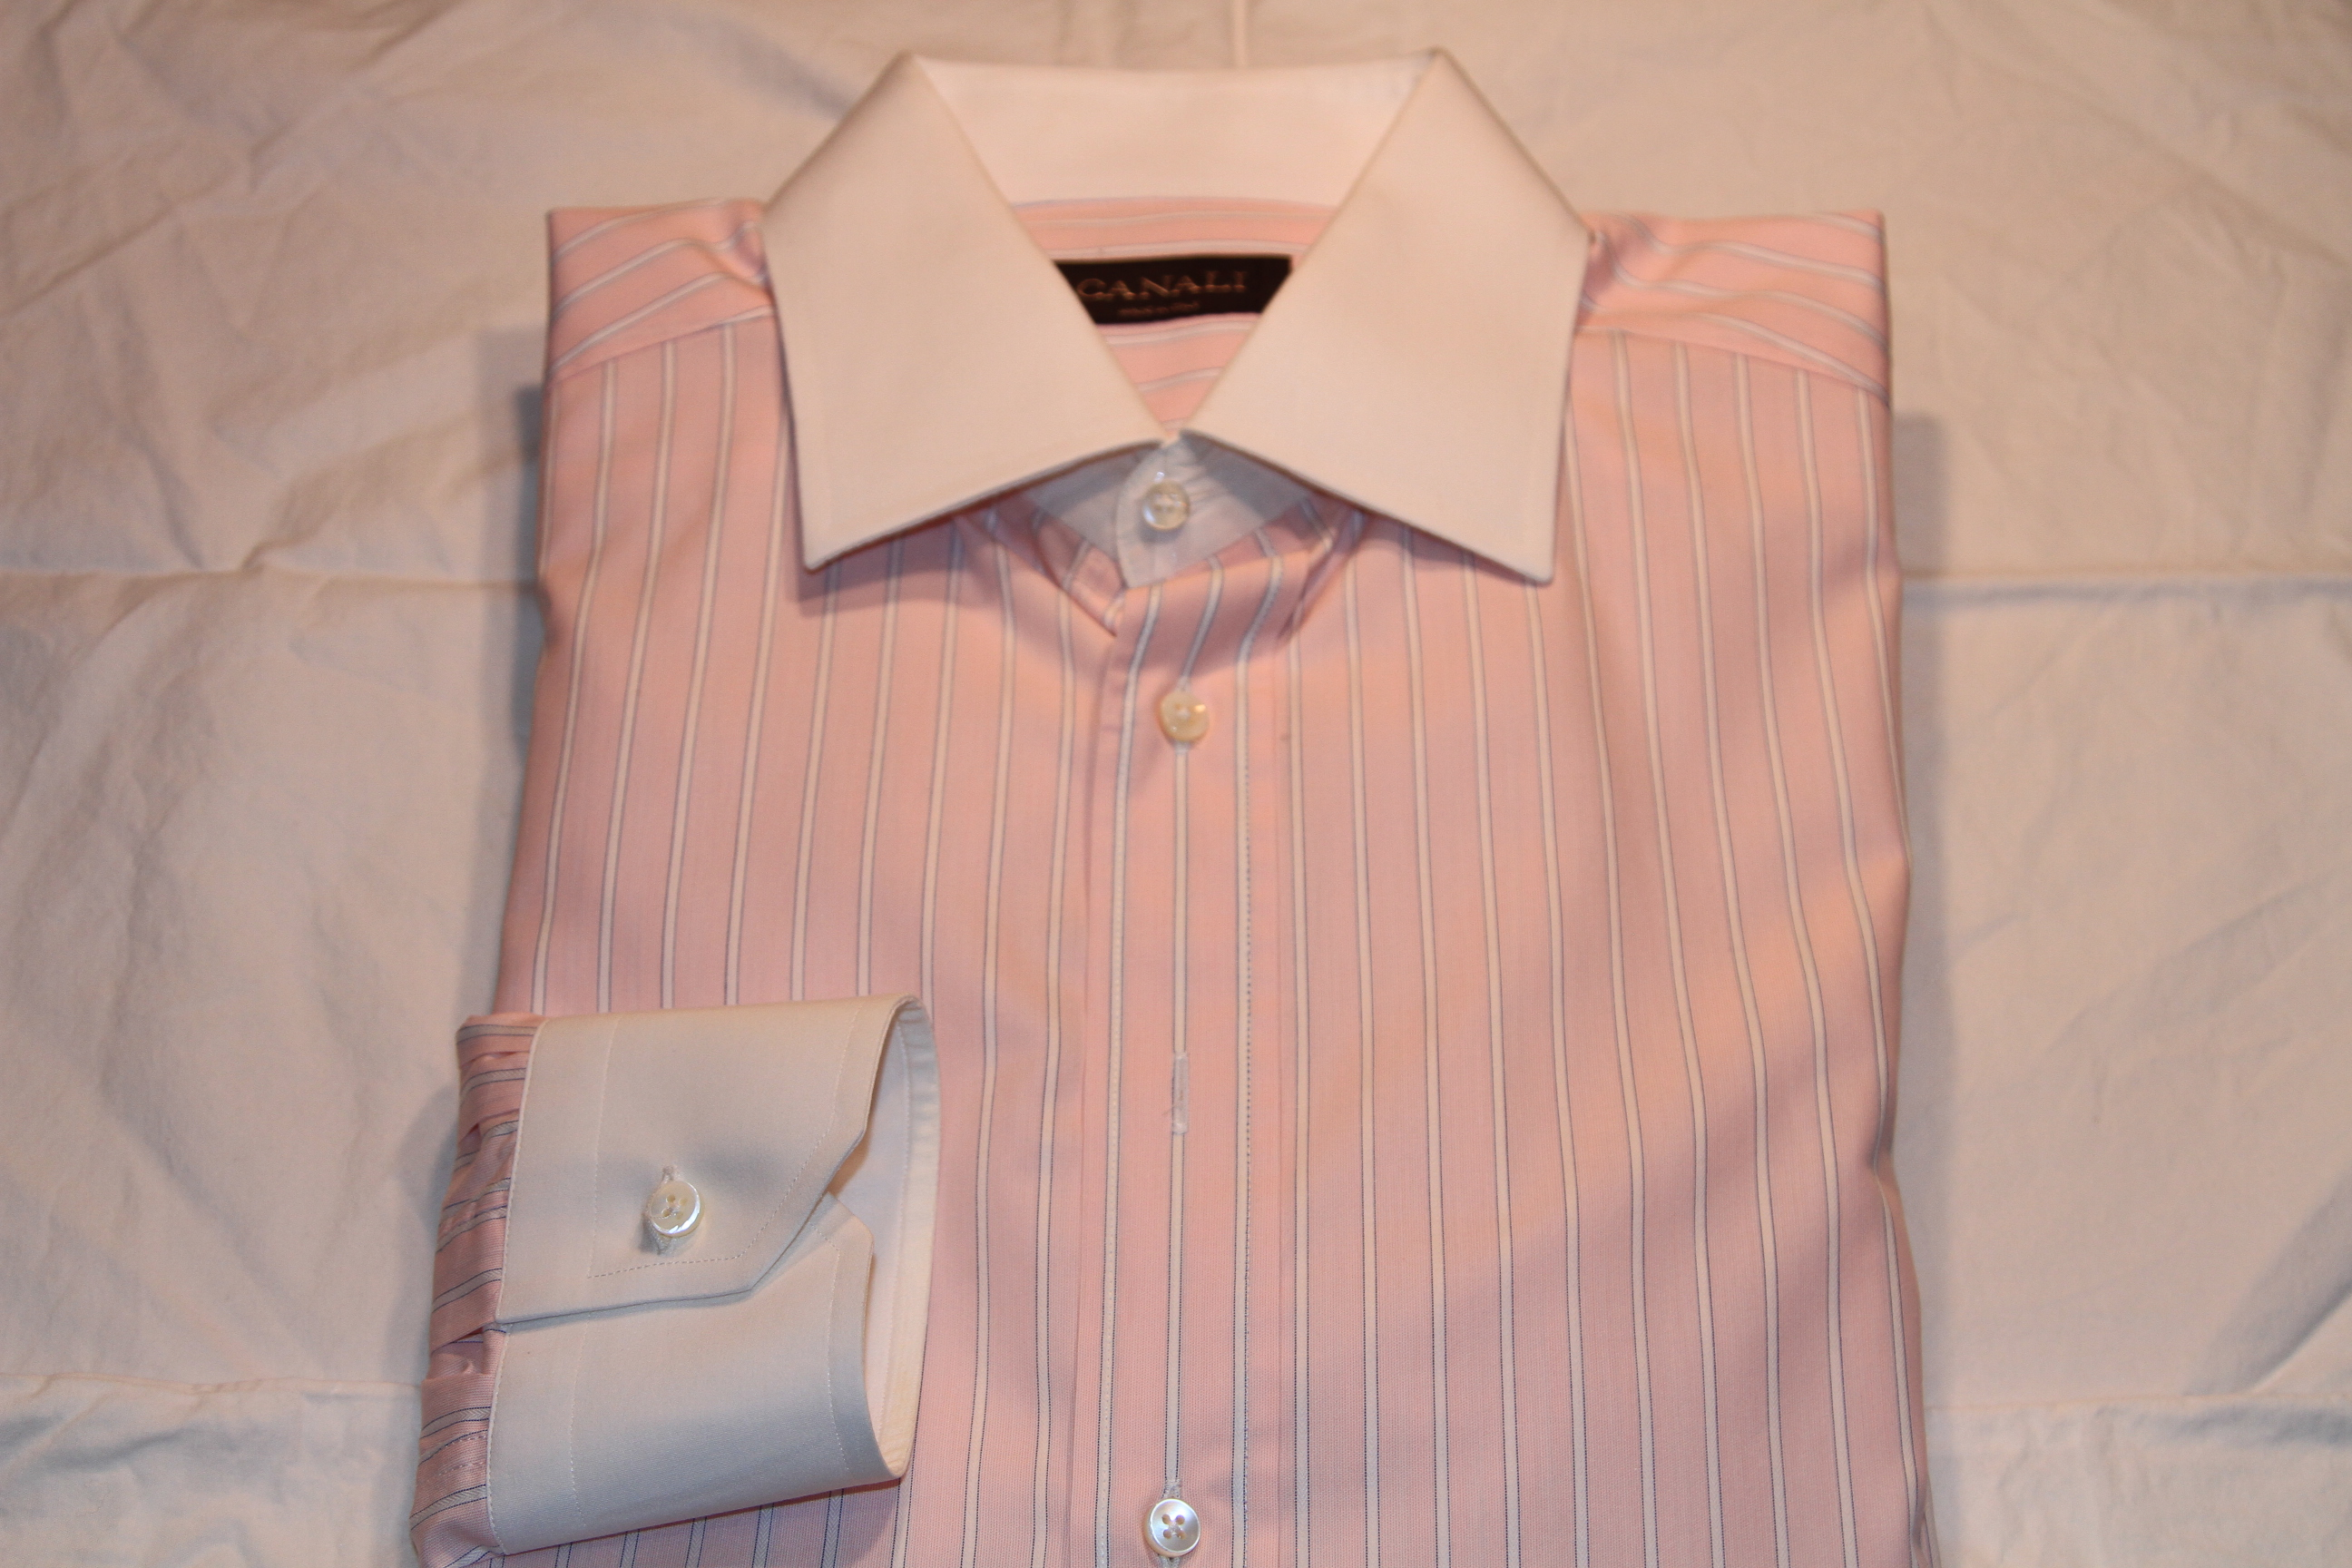 #14 - Canali 41/16 Pink with White Stripe (White Collar and Cuffs)